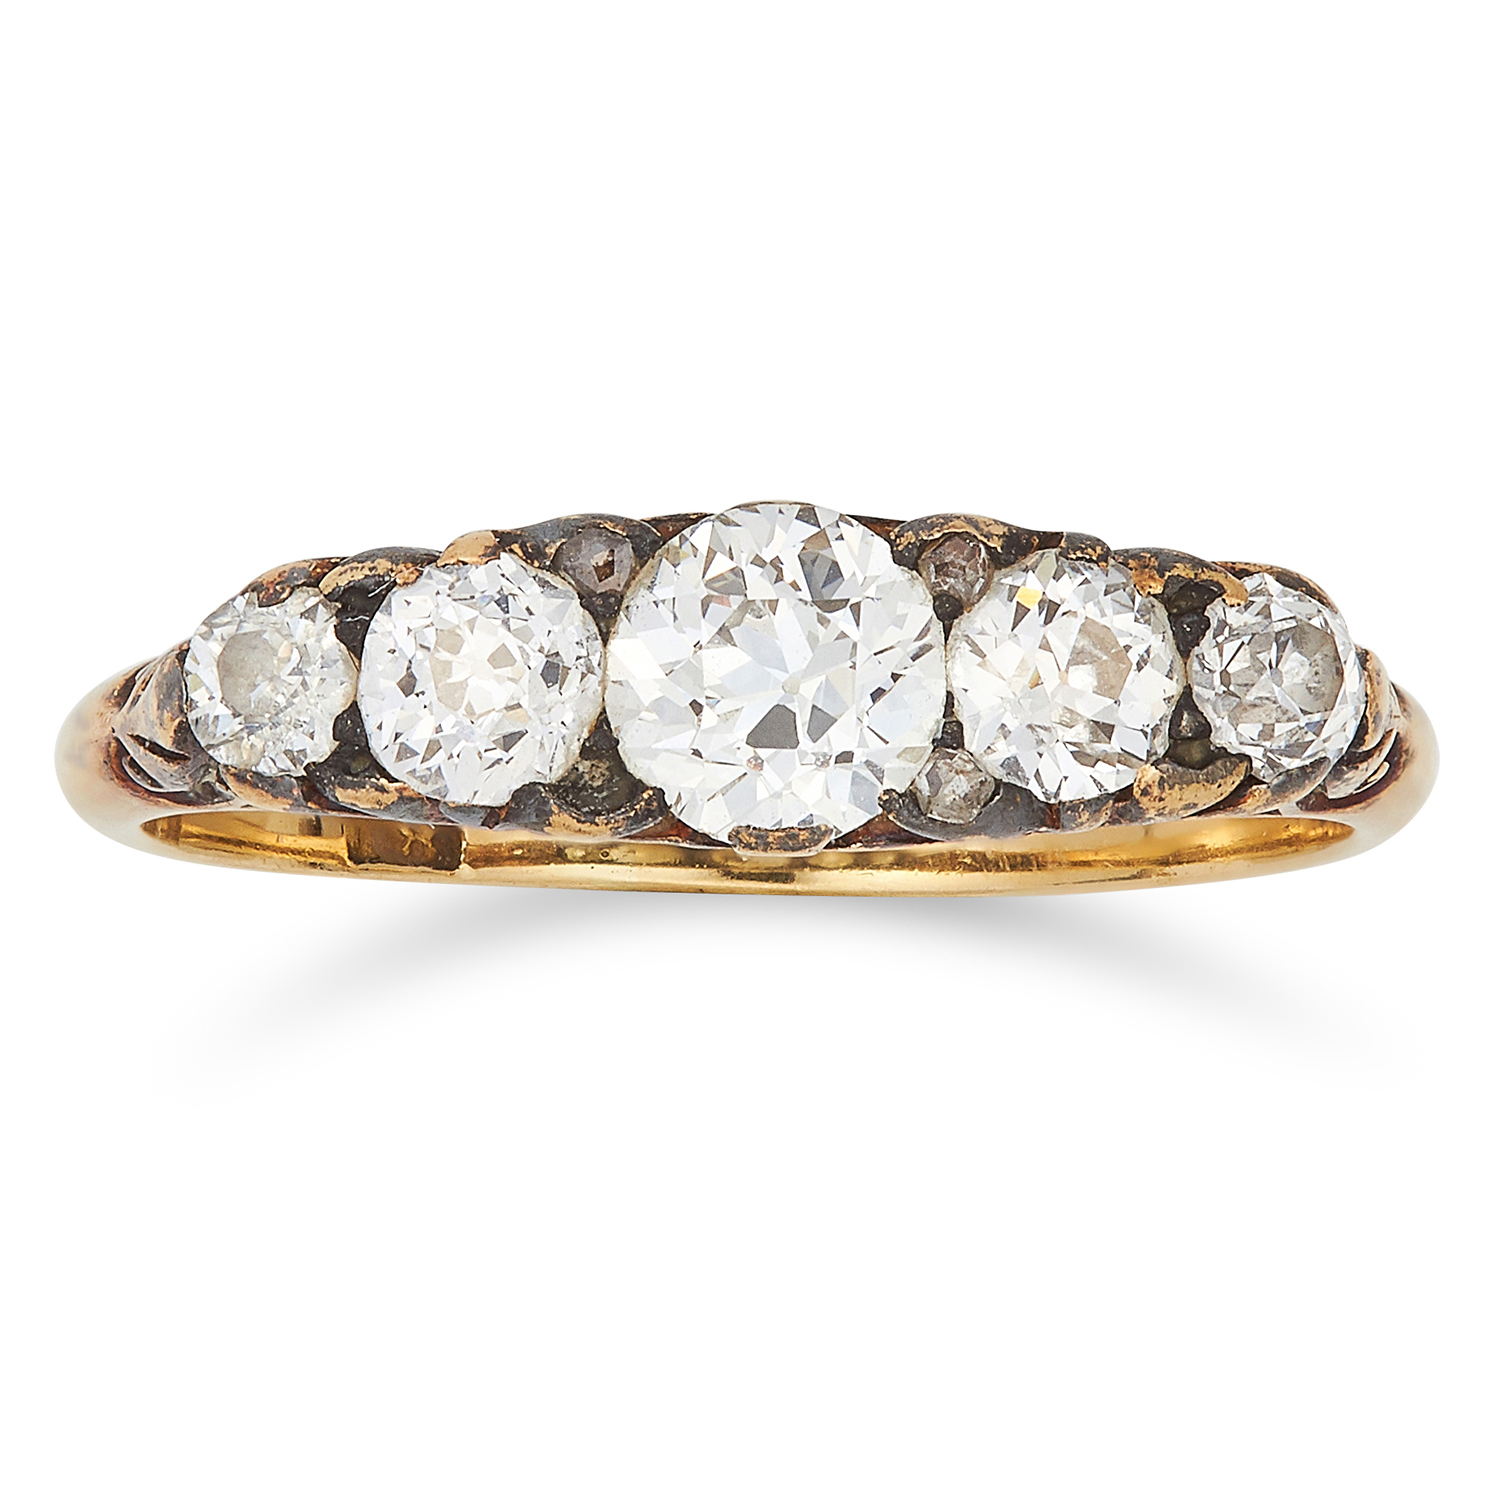 DIAMOND FIVE STONE RING set with round cut diamonds totalling approximately 0.75 carats, size M / 6,